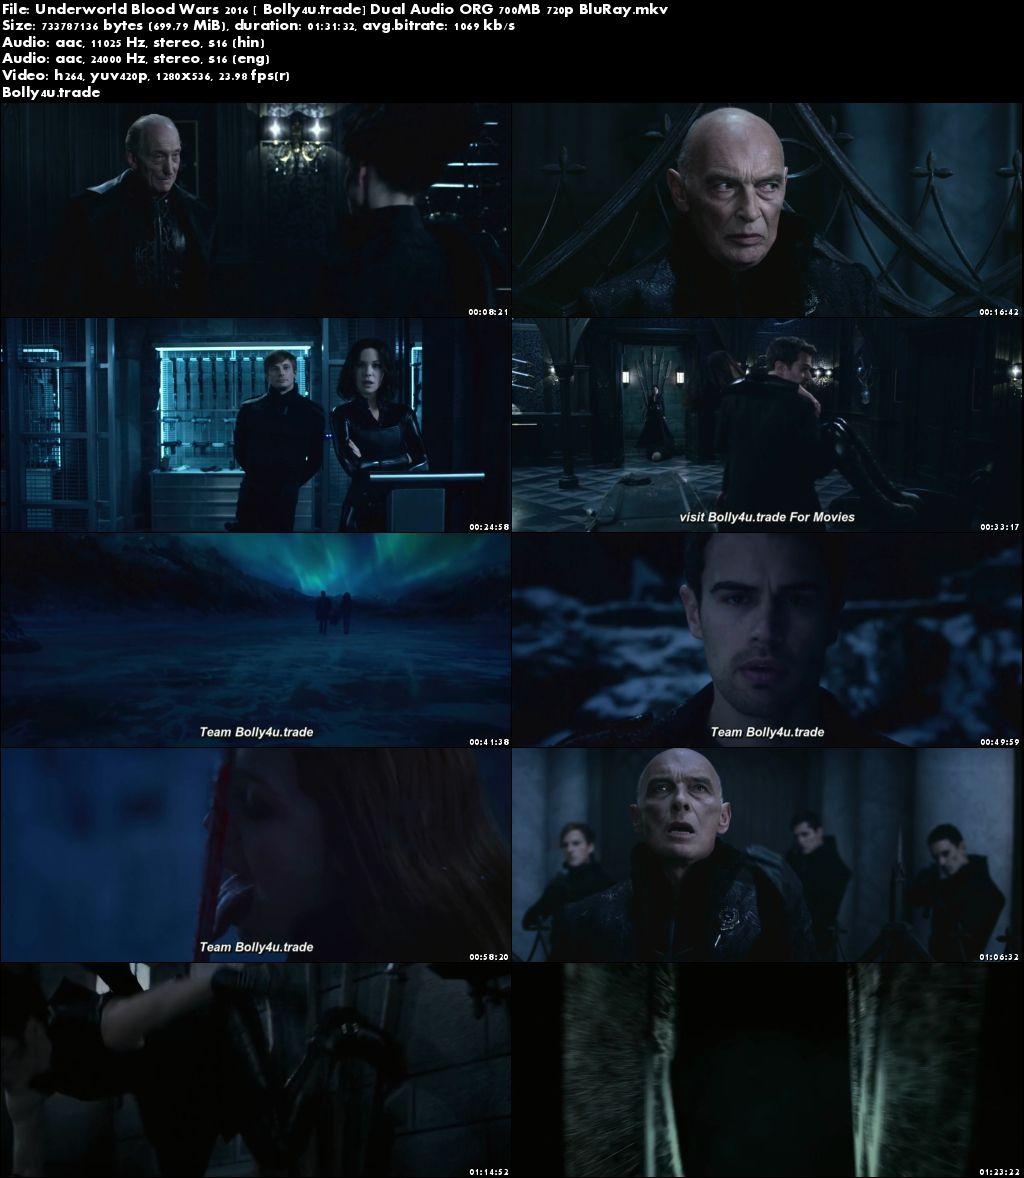 Underworld Blood Wars 2016 BluRay 700Mb Hindi Dual Audio ORG 720p Download